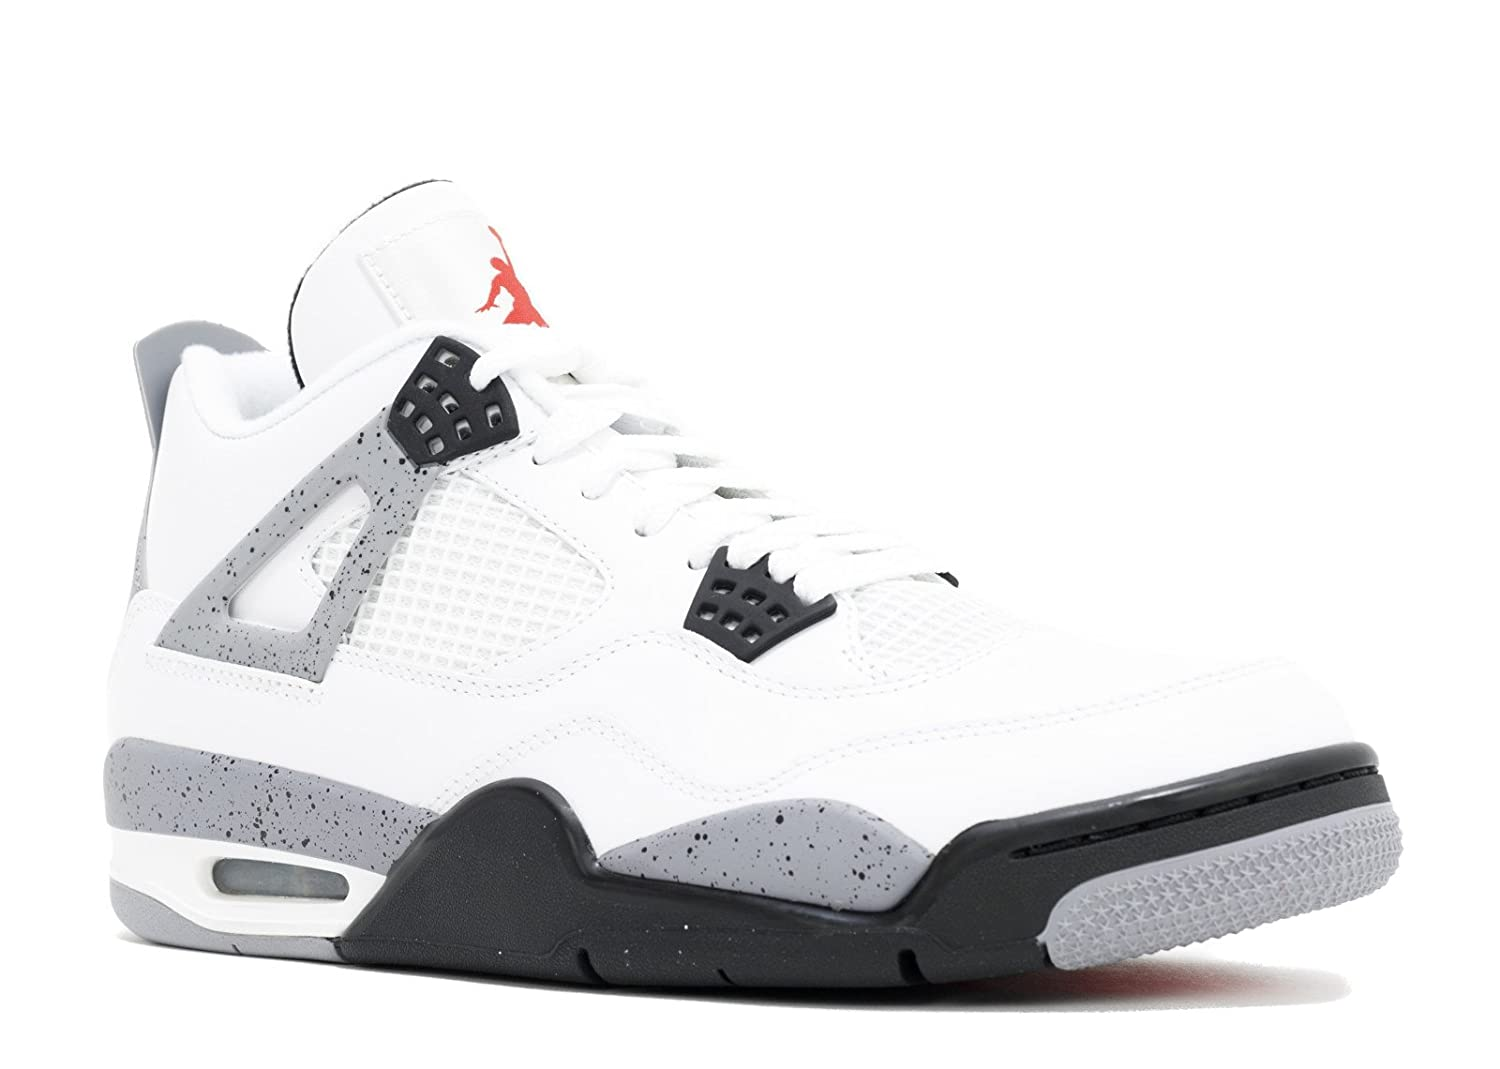 Nike AIR Jordan 4 Retro Mens 308497-103 (14, White/Black-Cement Grey)